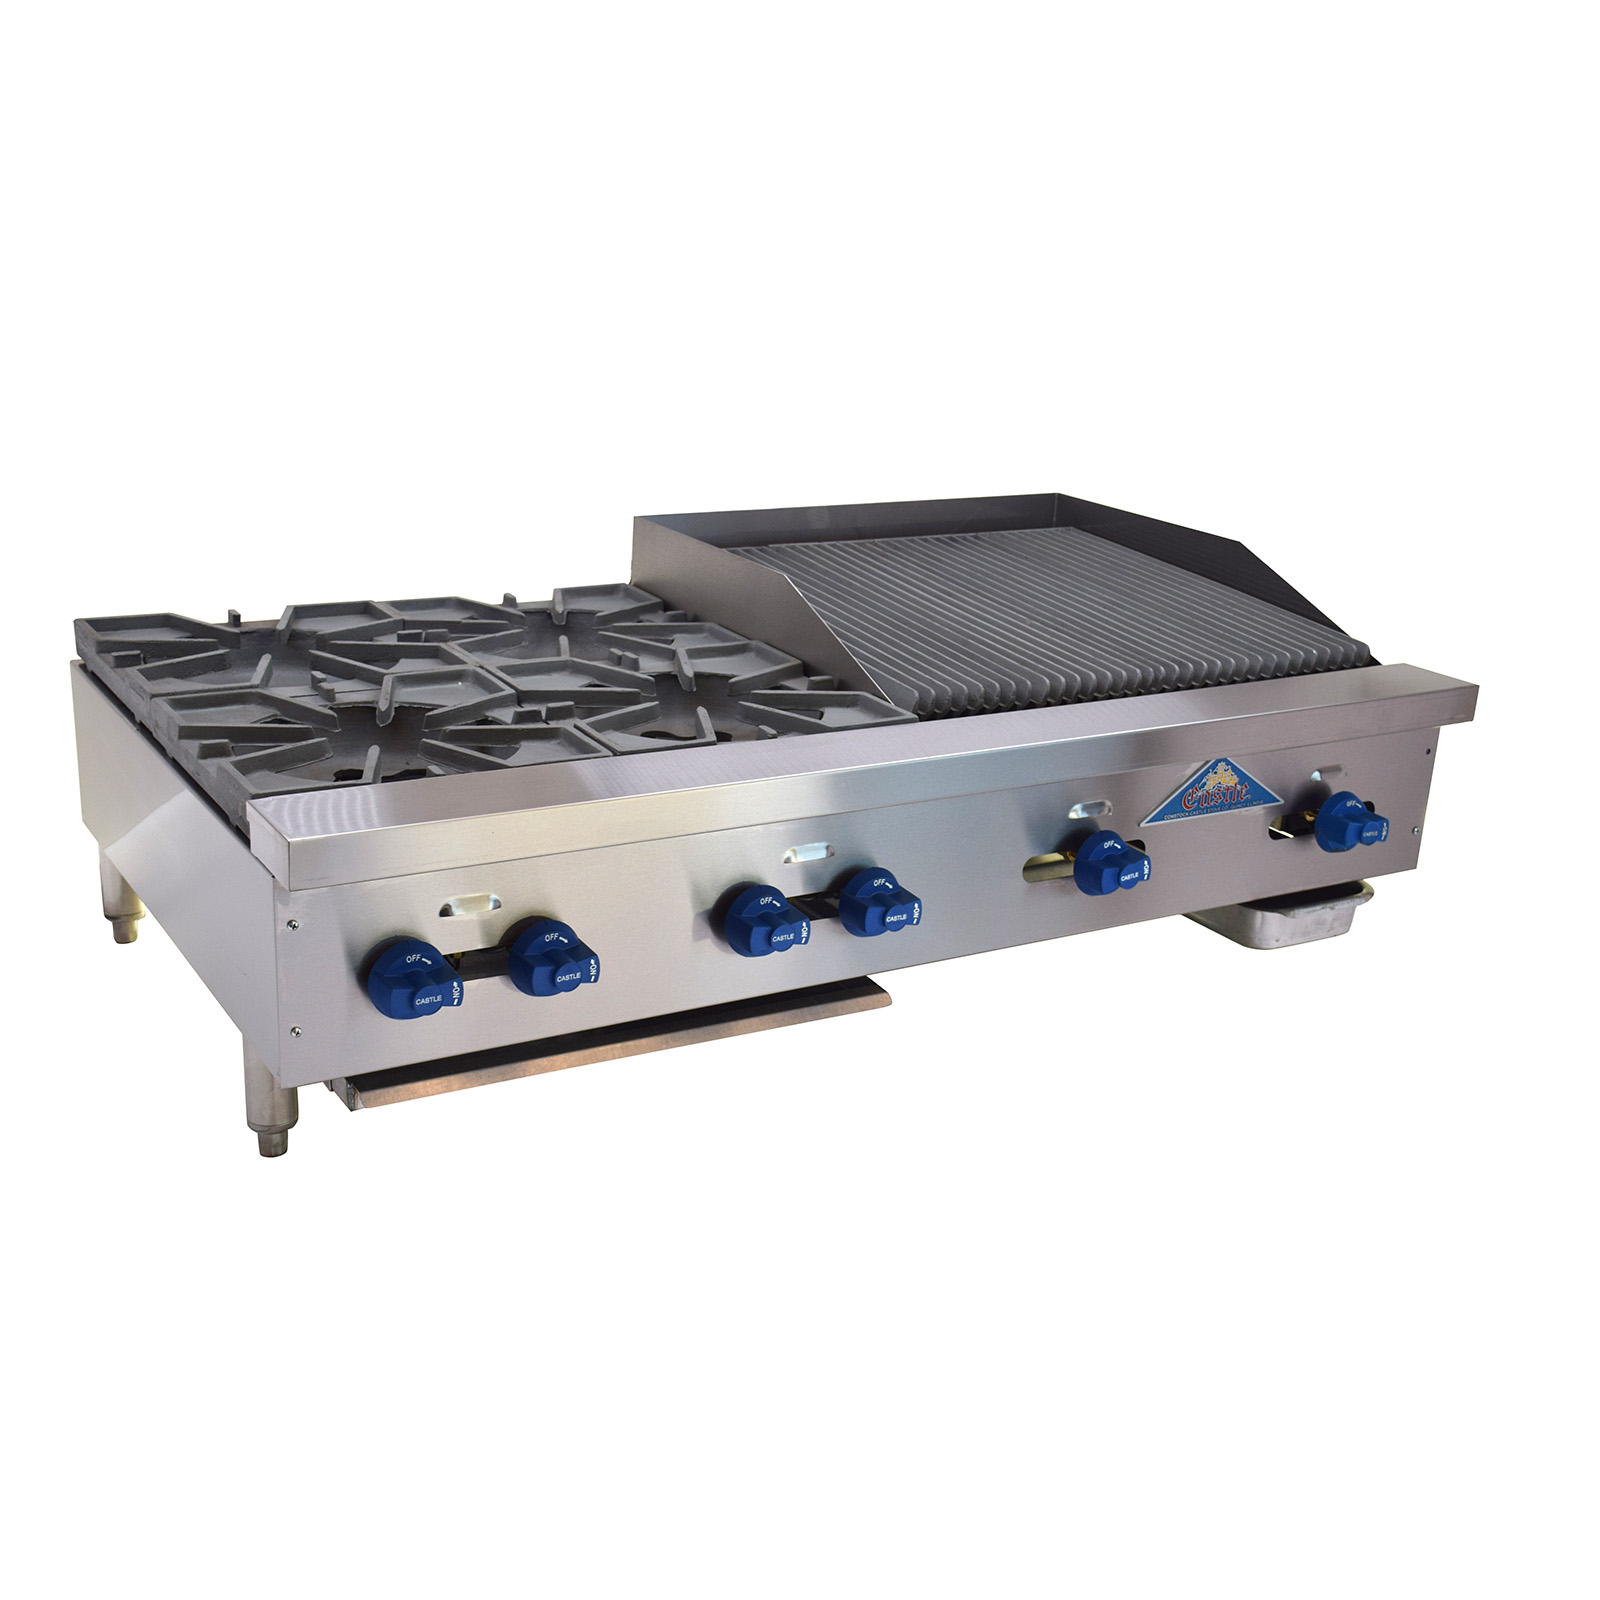 Comstock-Castle FHP48-2RB charbroiler / hotplate, gas, countertop